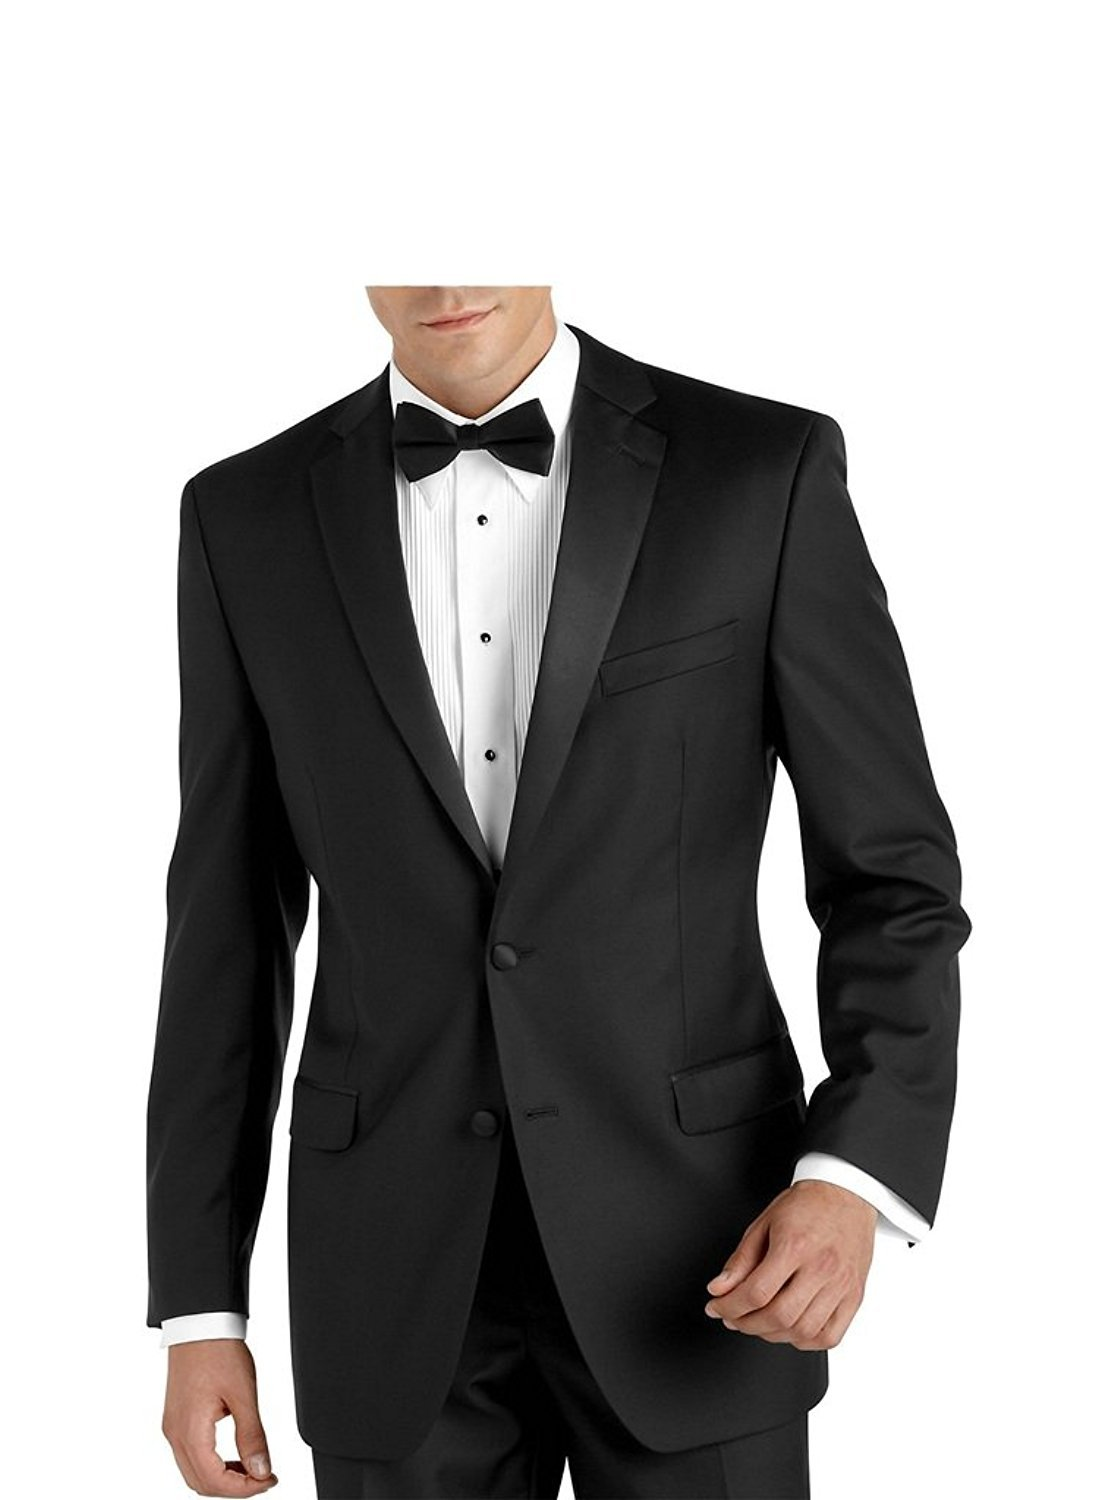 Adam Baker Men's Regular Fit Two-Piece Notch Lapel Tuxedo Suit TUX-2